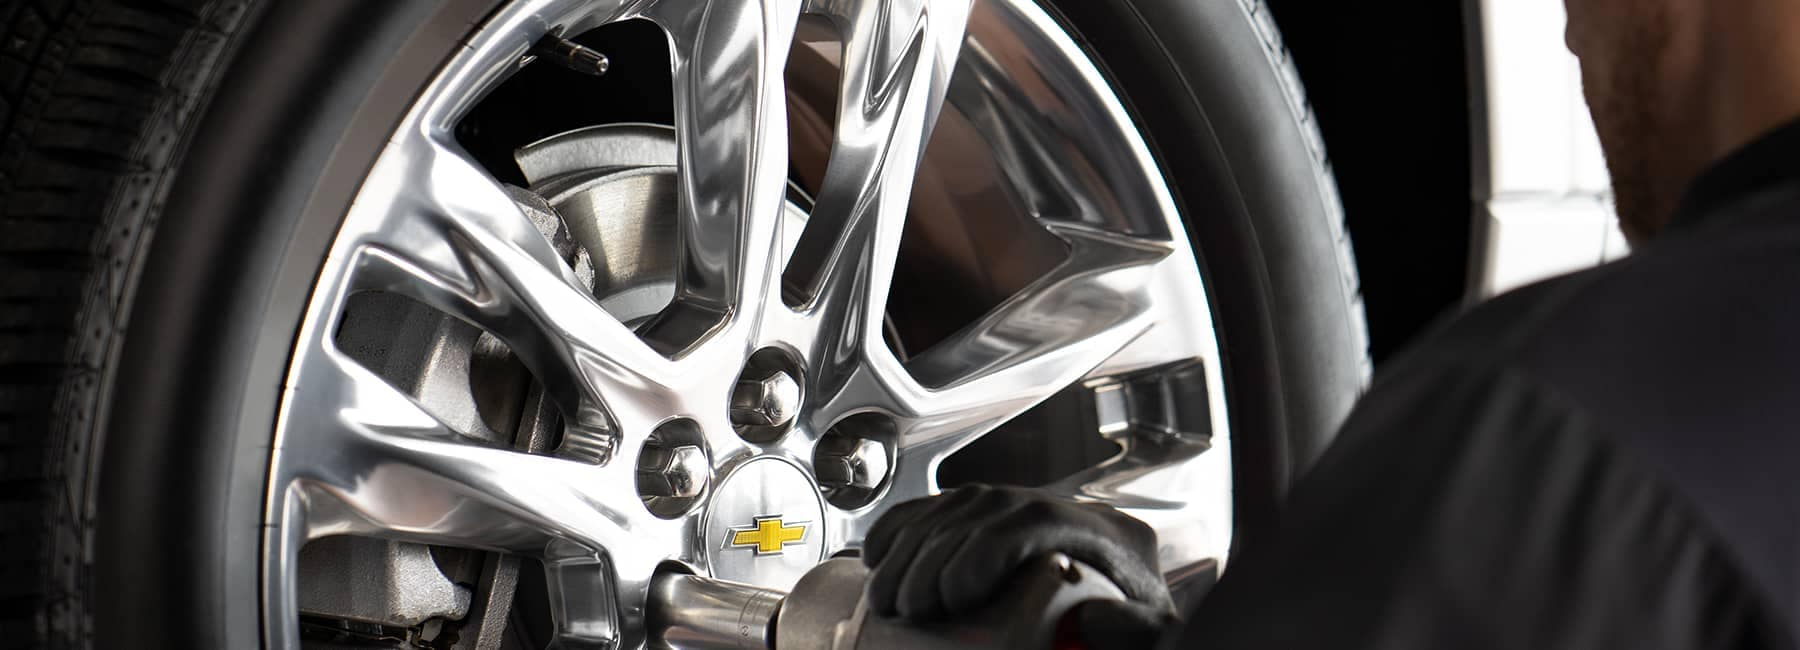 close up of Chevy wheel and rims